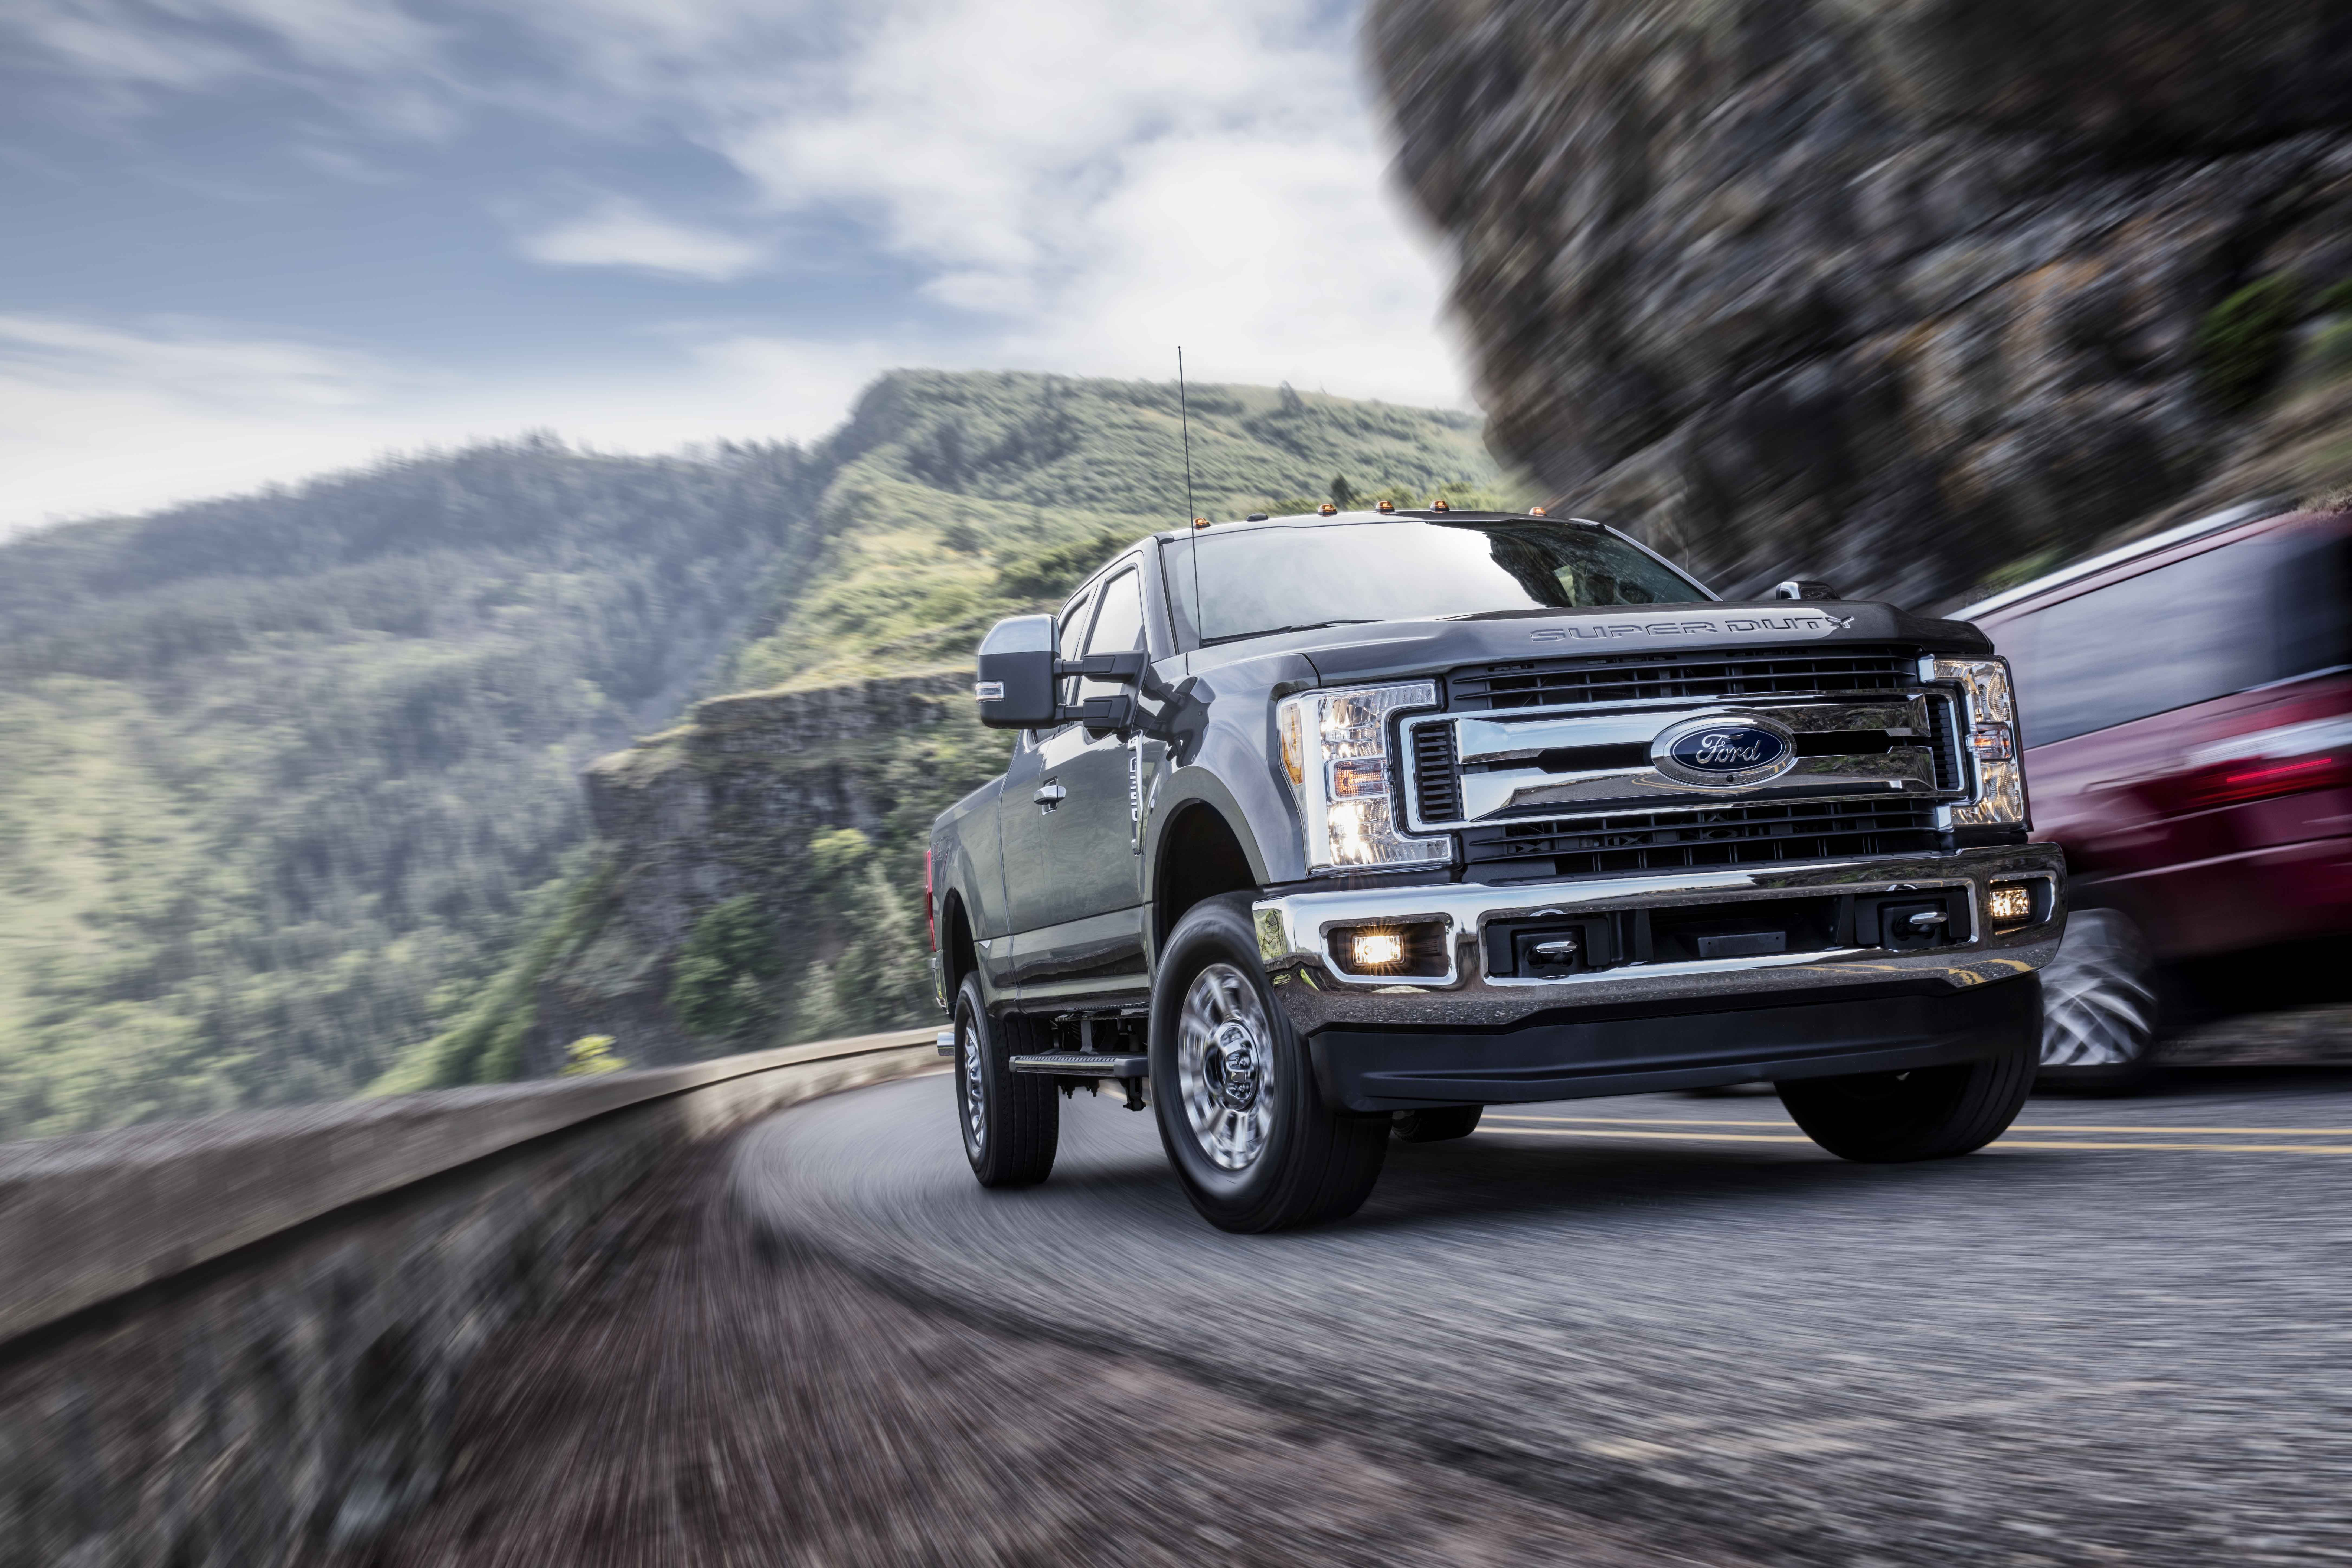 Ford Repair and Maintenance in Elizabethtown, KY